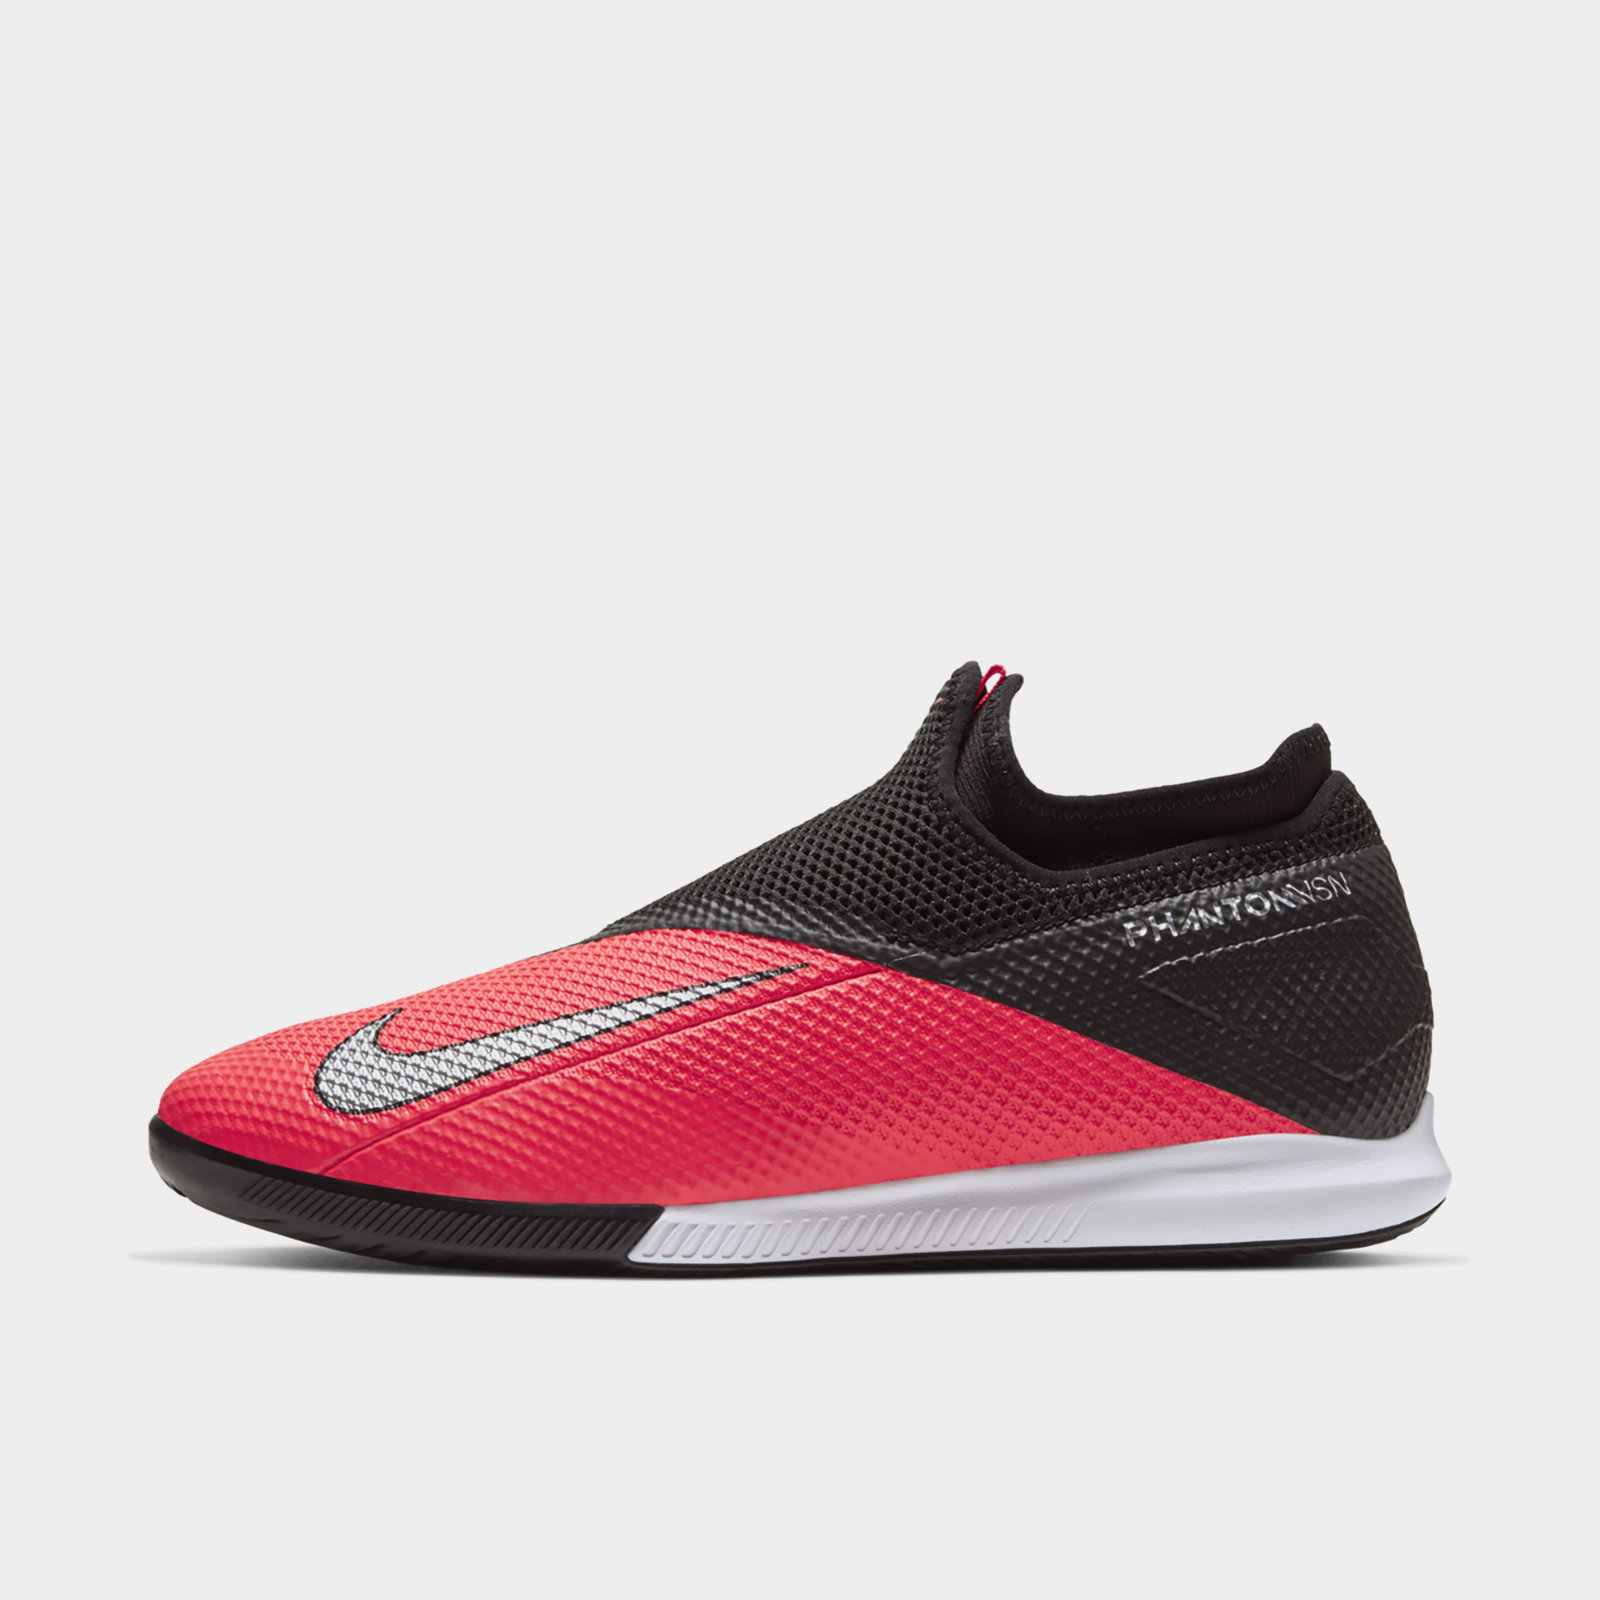 Phantom Vision Academy Indoor Football Trainers Mens